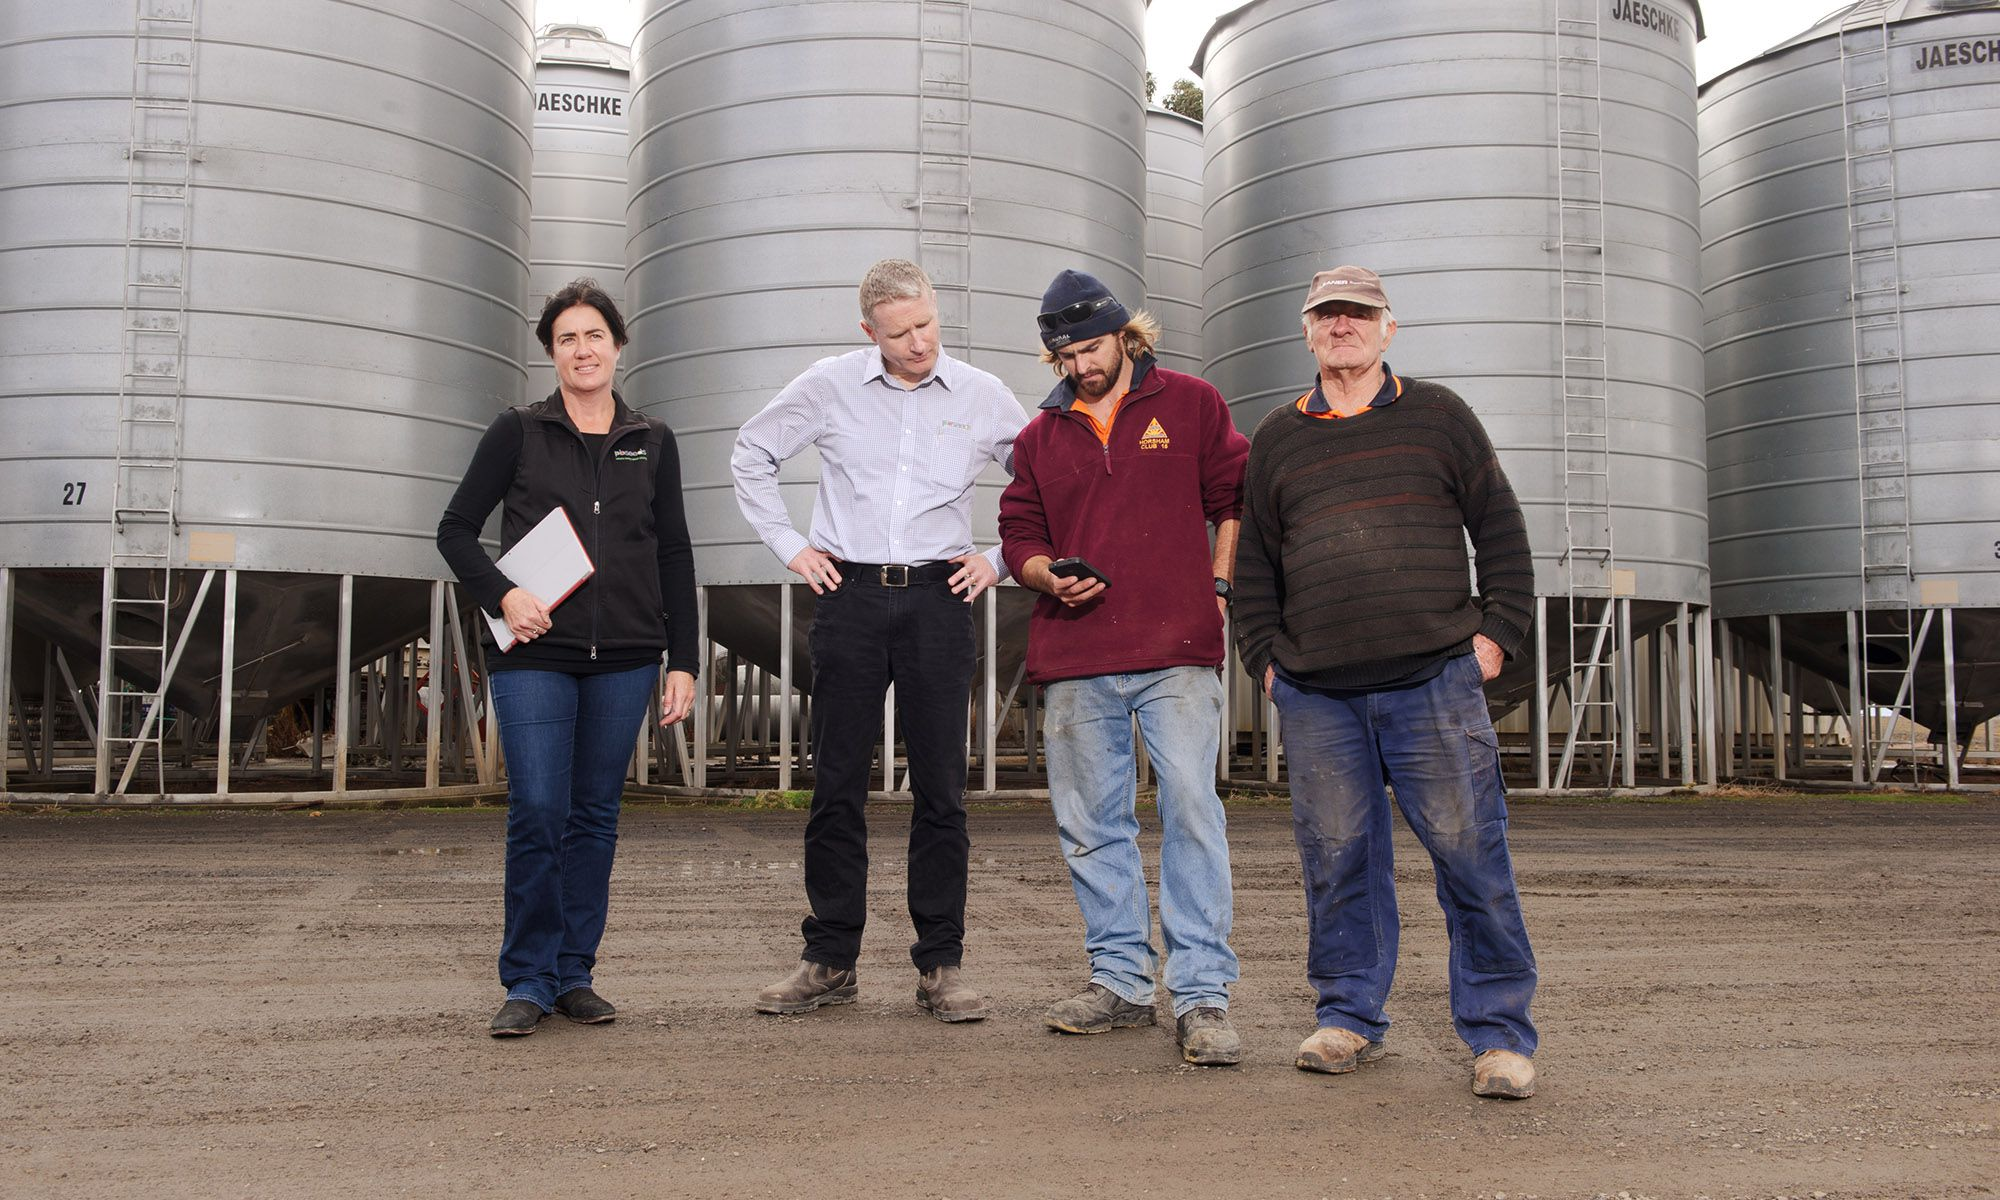 Four workers stand in front of grain silos